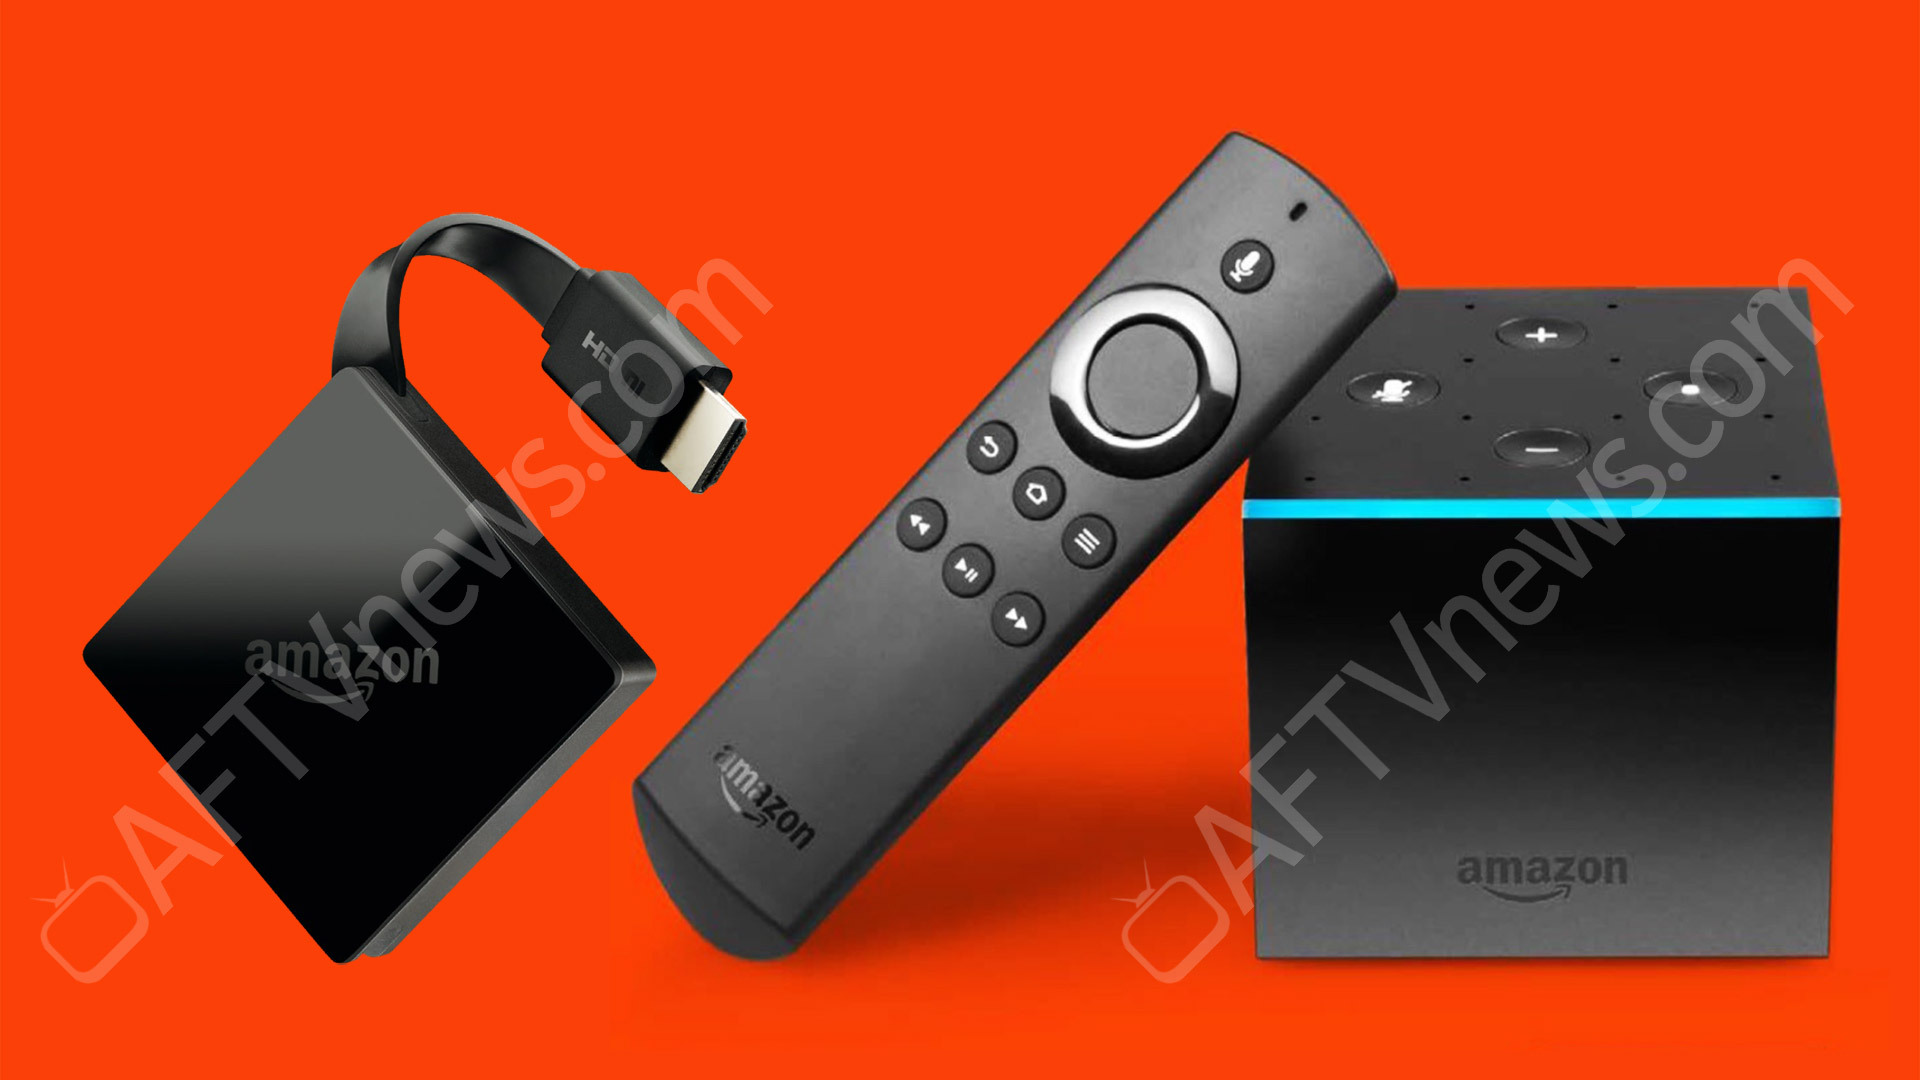 Leak reveals that Amazon to announce two new streaming devices